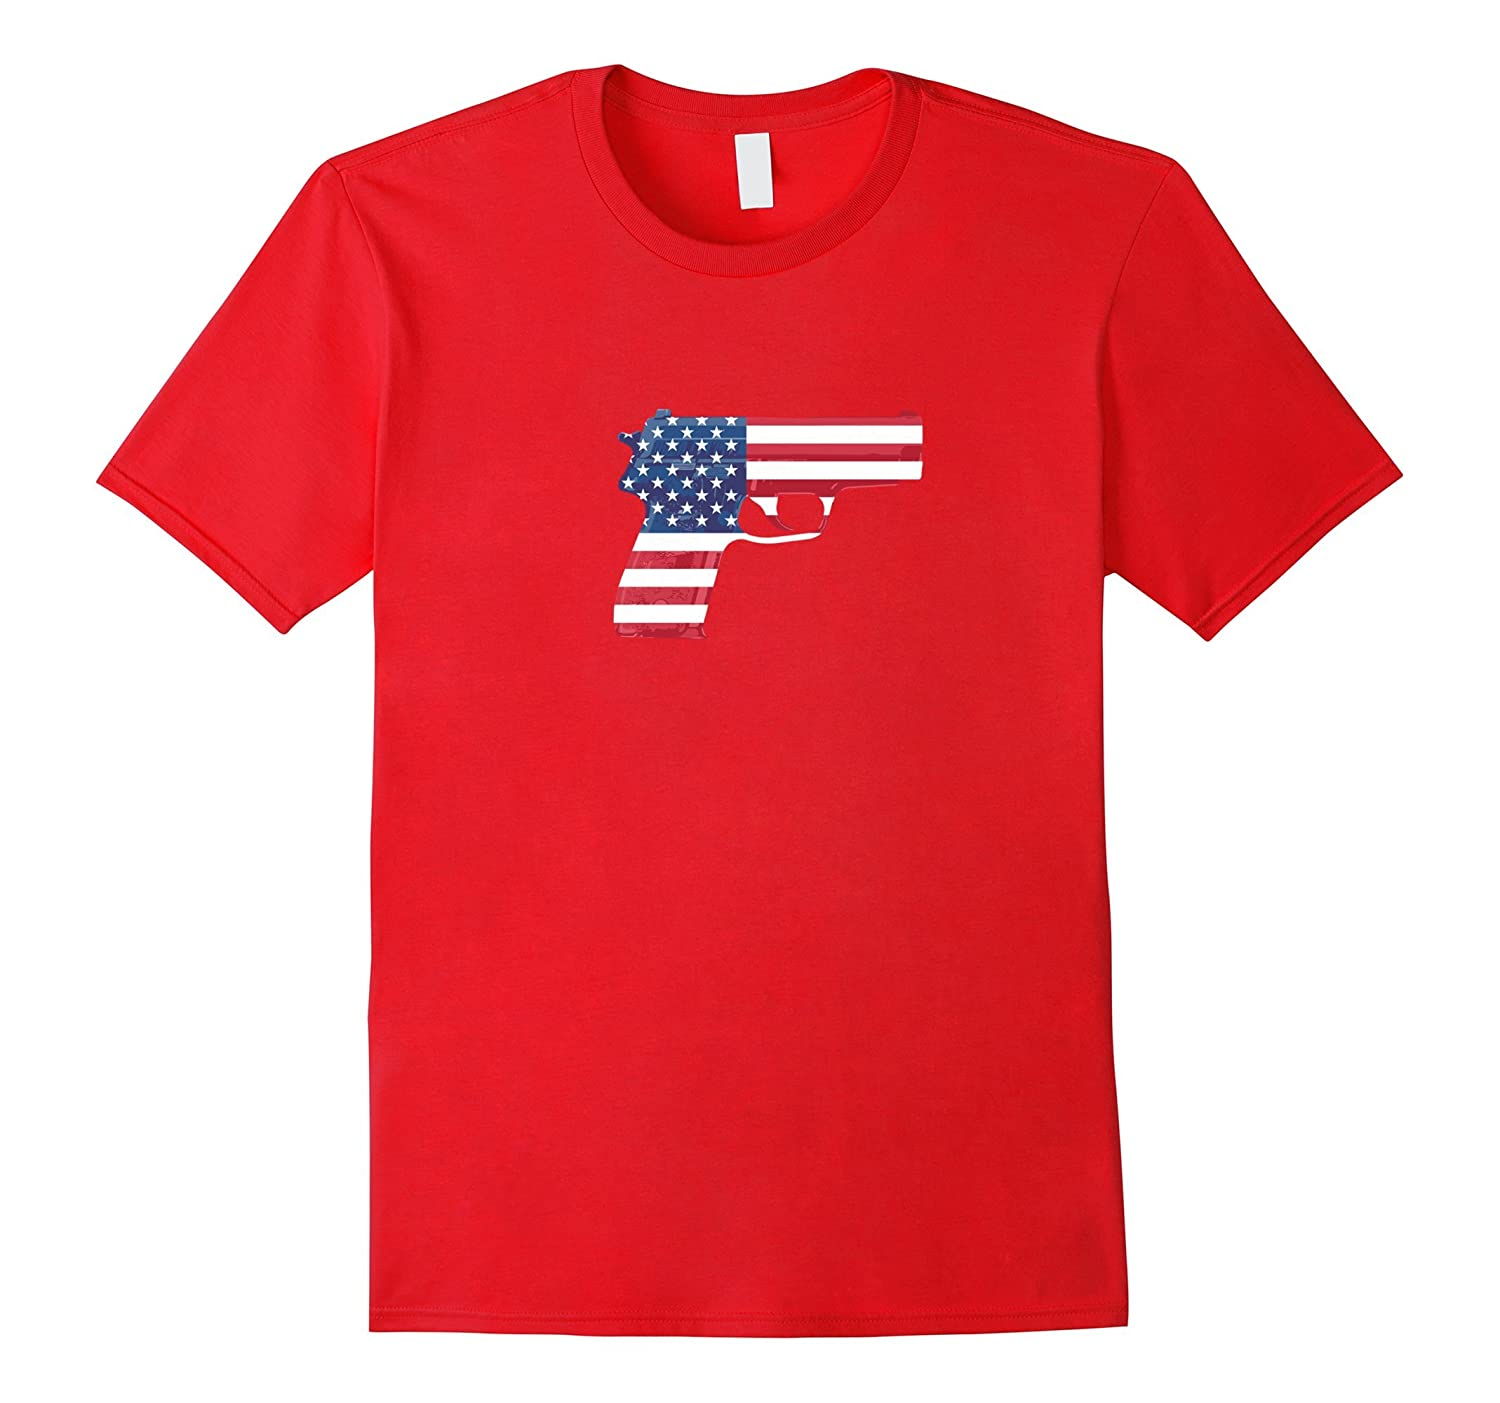 American Flag Gun T-shirt Cool Fashion Casual Top Tee-Vaci